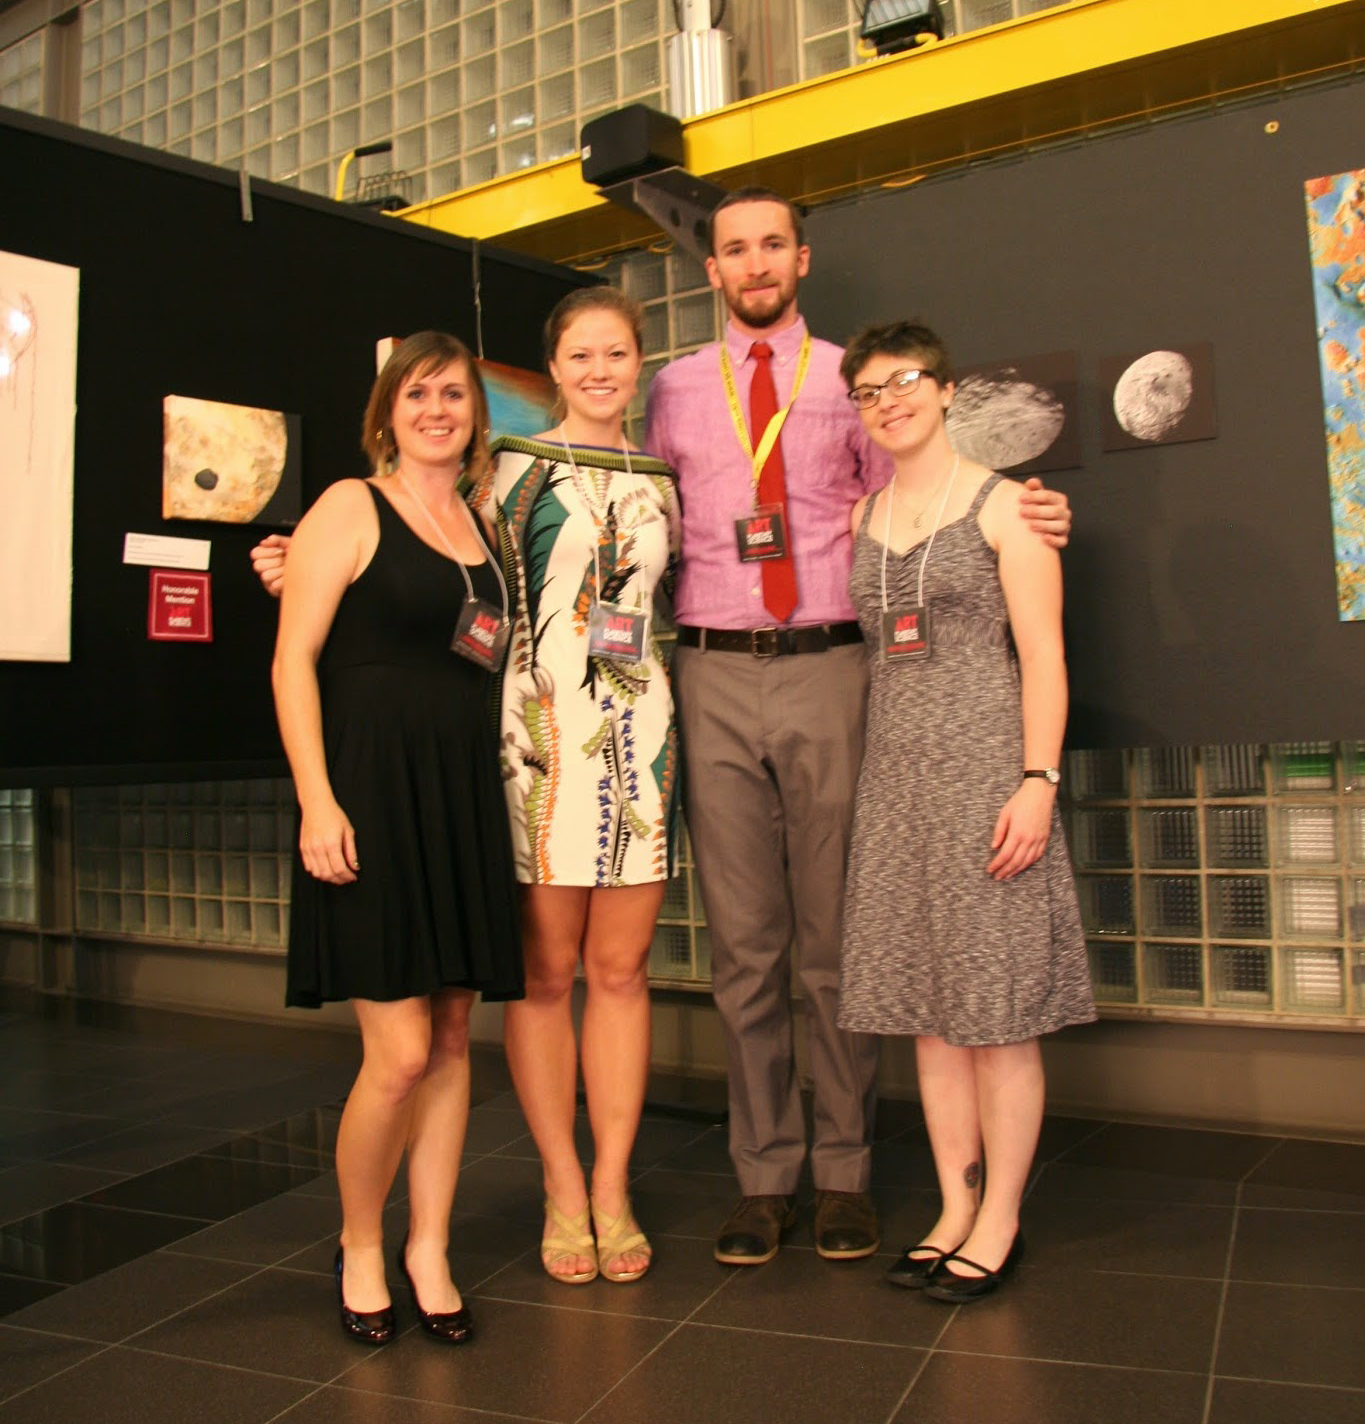 The Art of Planetary Science's 2014 lead team (left to right): Jamie Molaro, Sarah Peacock, James Keane, Hannah Tanquary